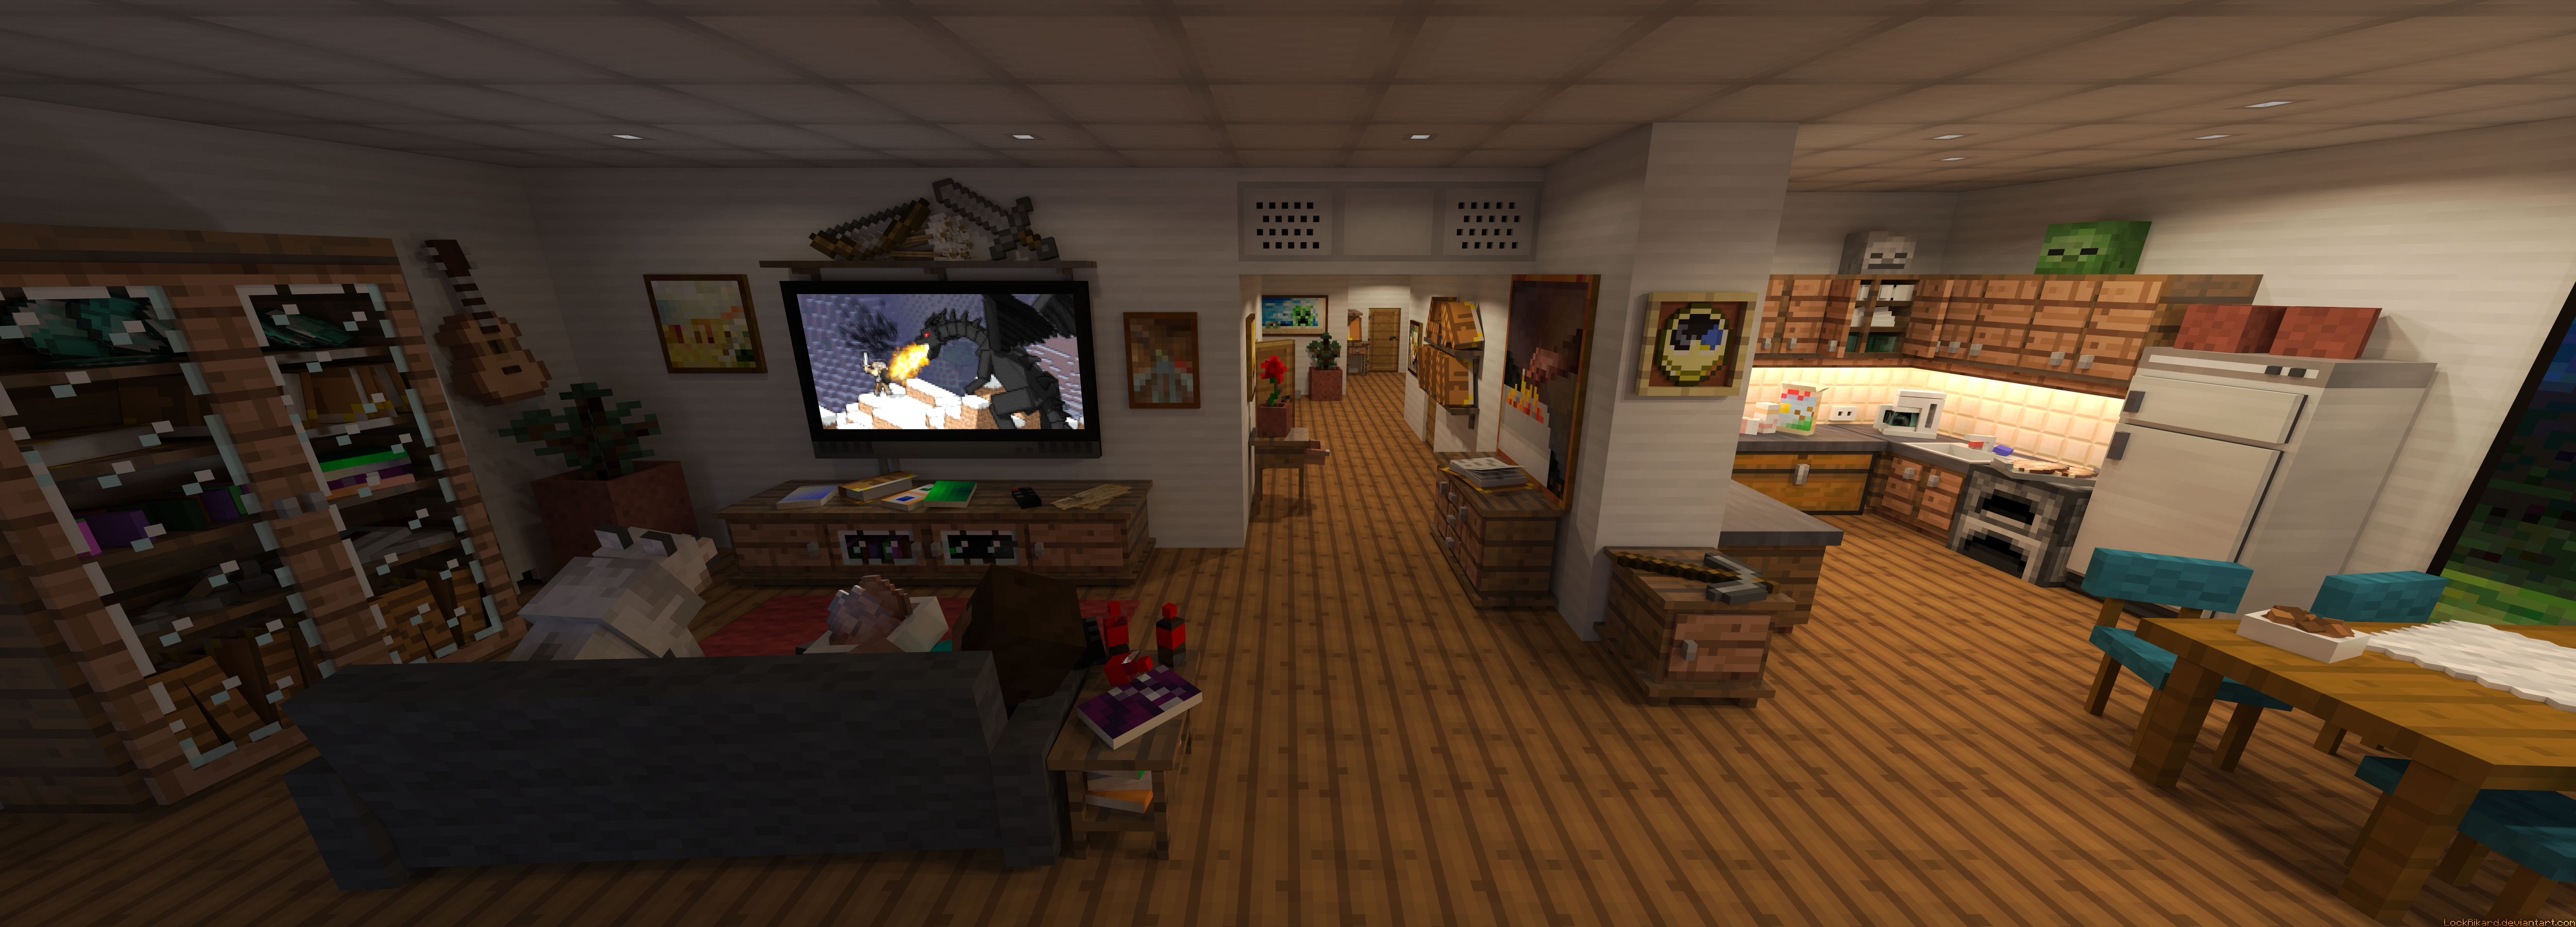 Steve 39 s apartment by lockrikard on deviantart for Make a 3d room